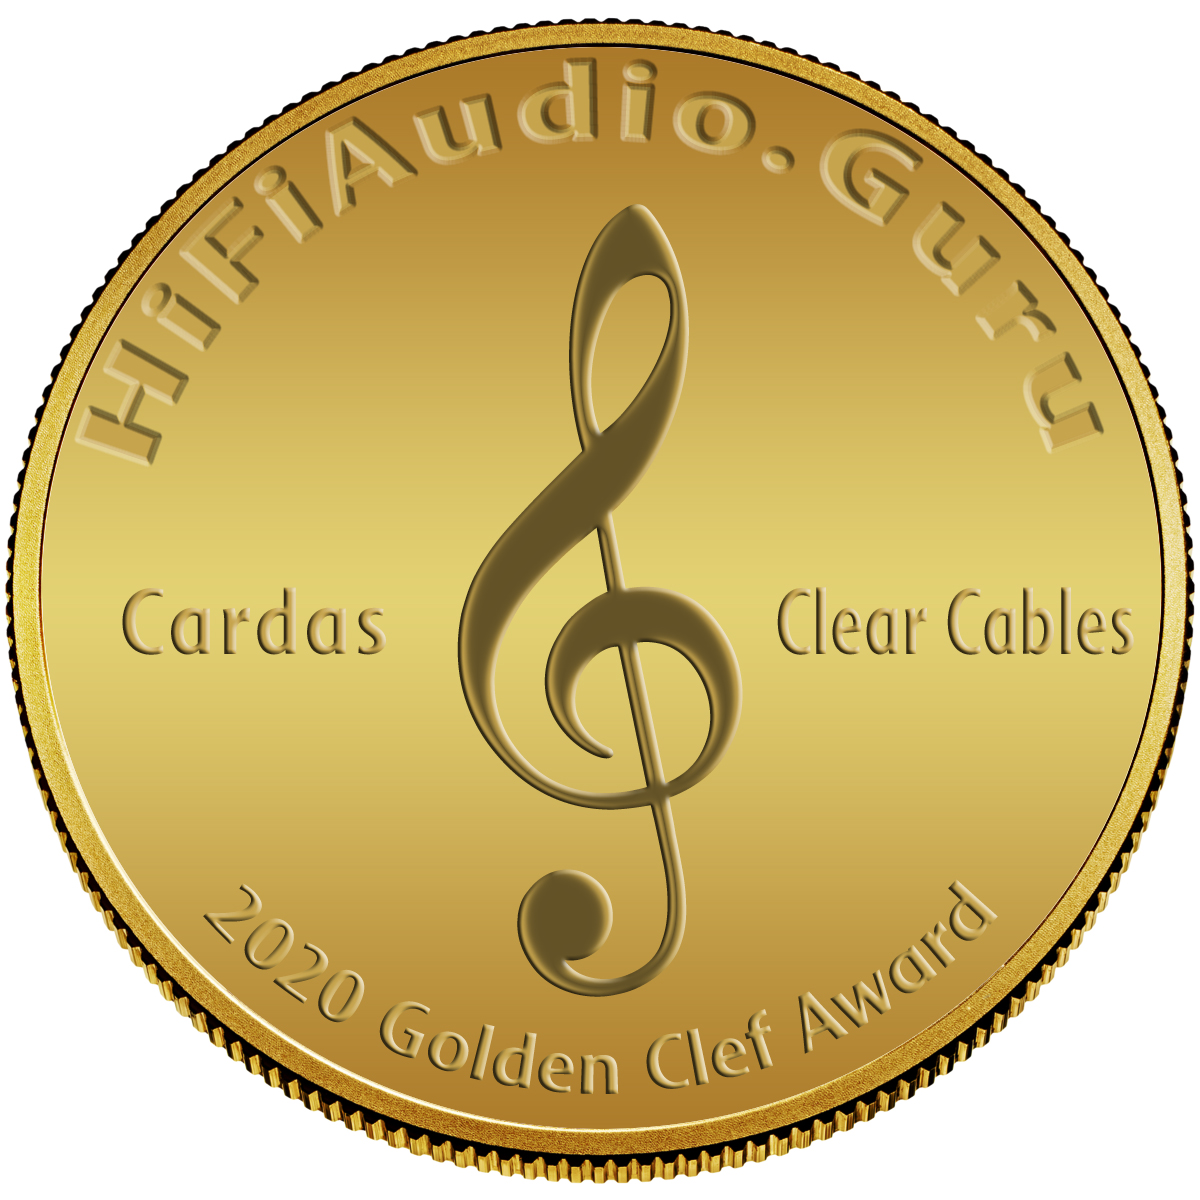 Cardas Clear Cables